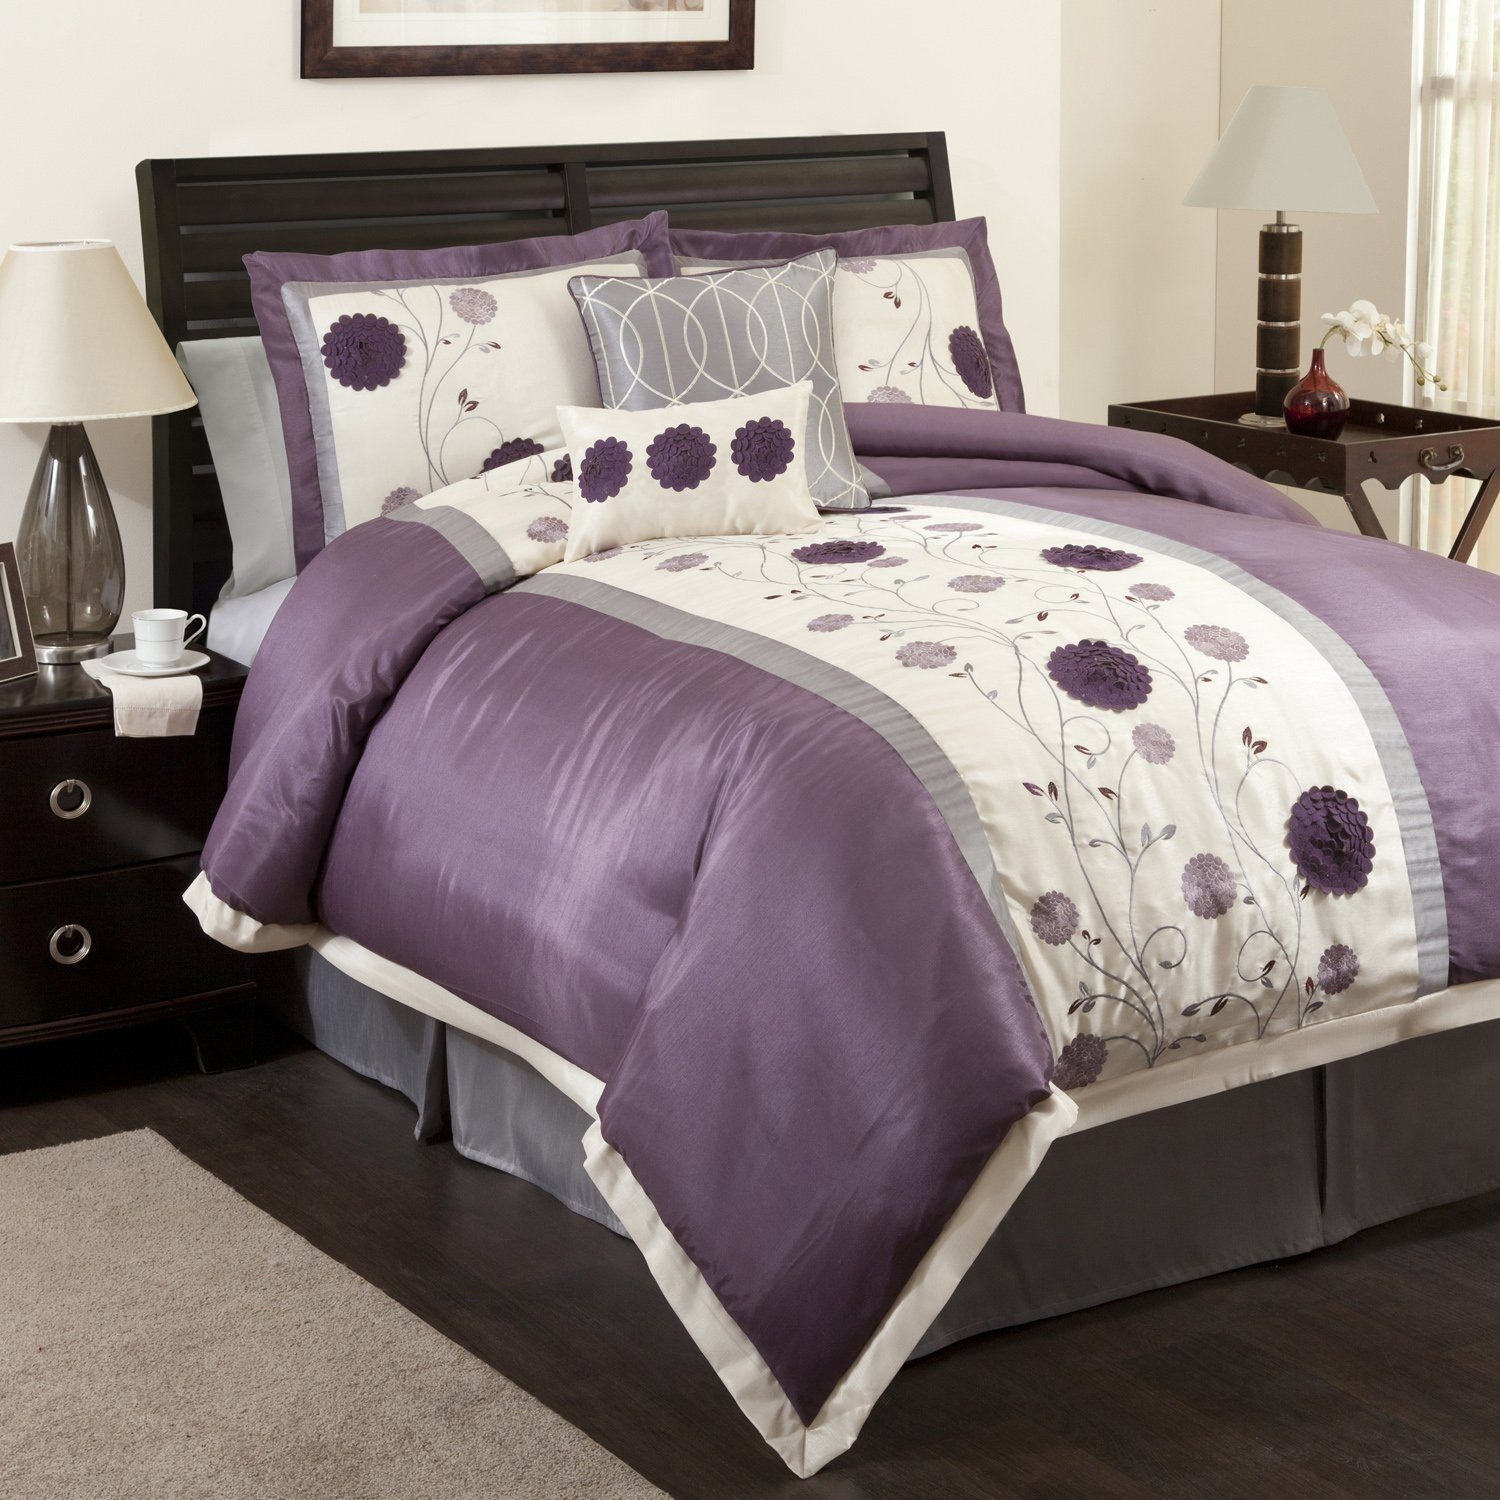 Queen Size Bedding Sets | Twin Comforter Sets | Bedspread Sets